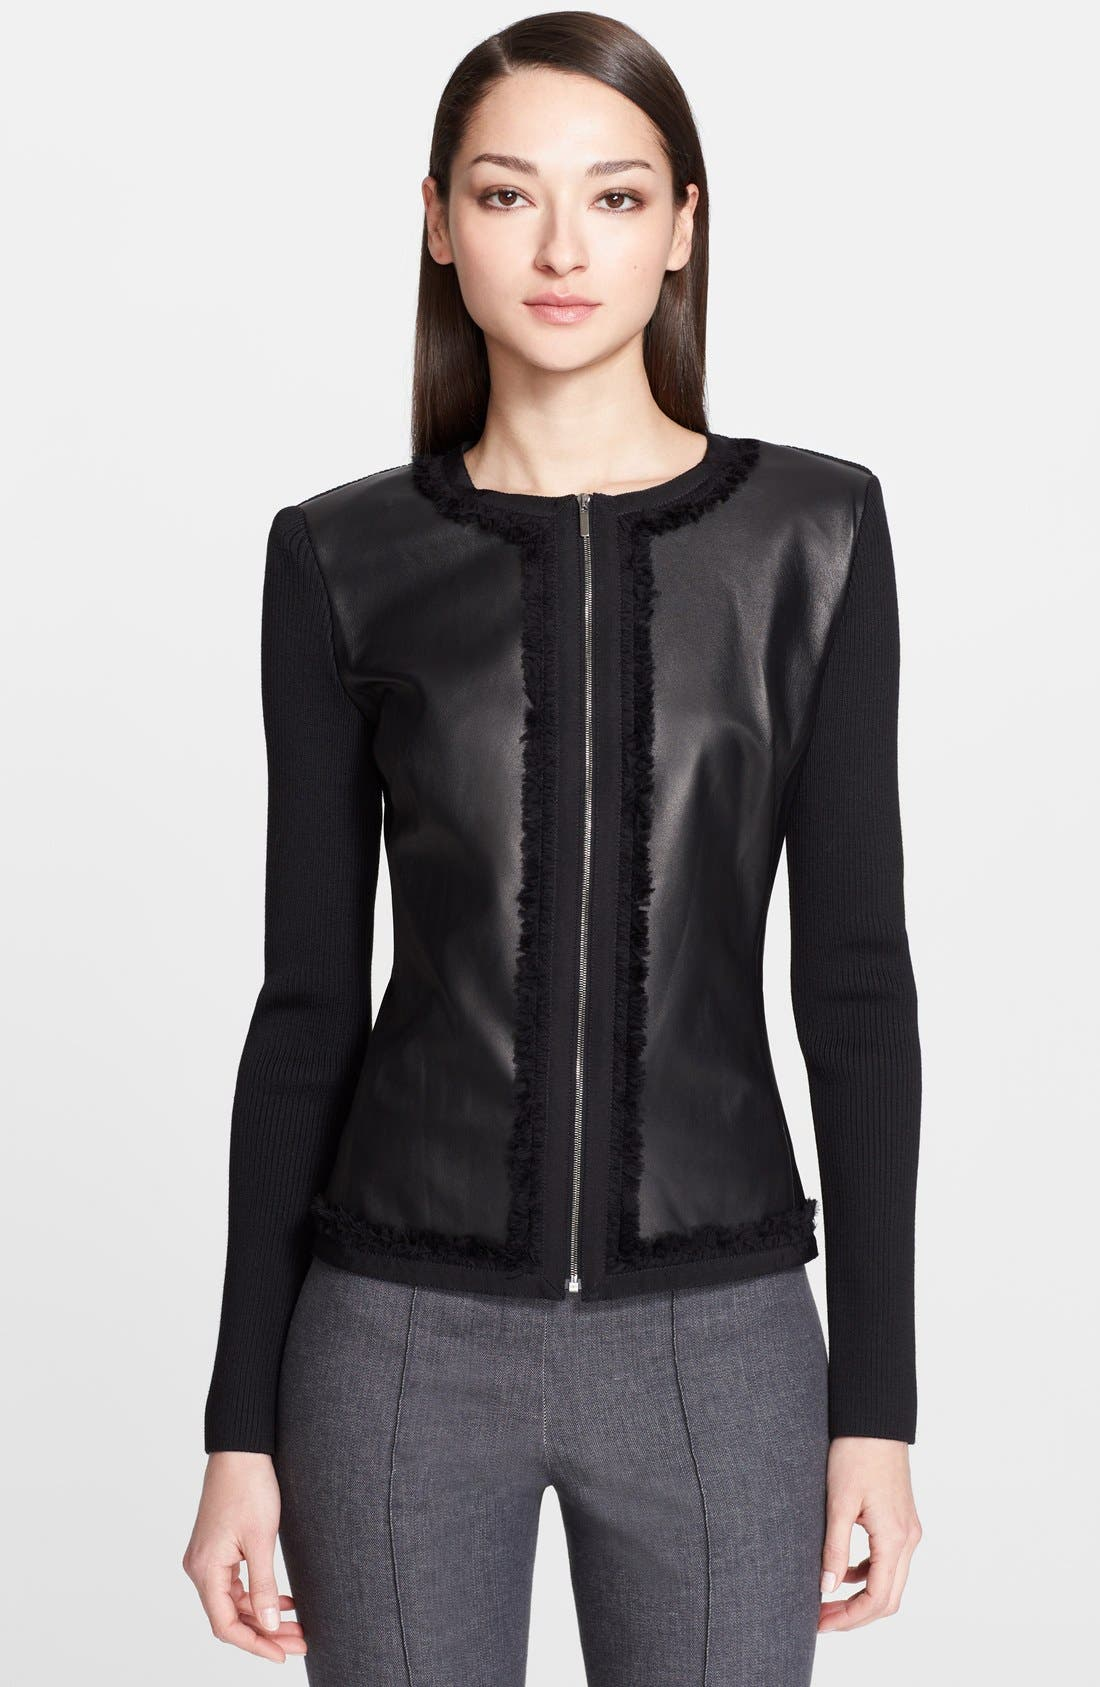 Alternate Image 1 Selected - St. John Collection Leather & Milano Knit Jacket with Organza Trim